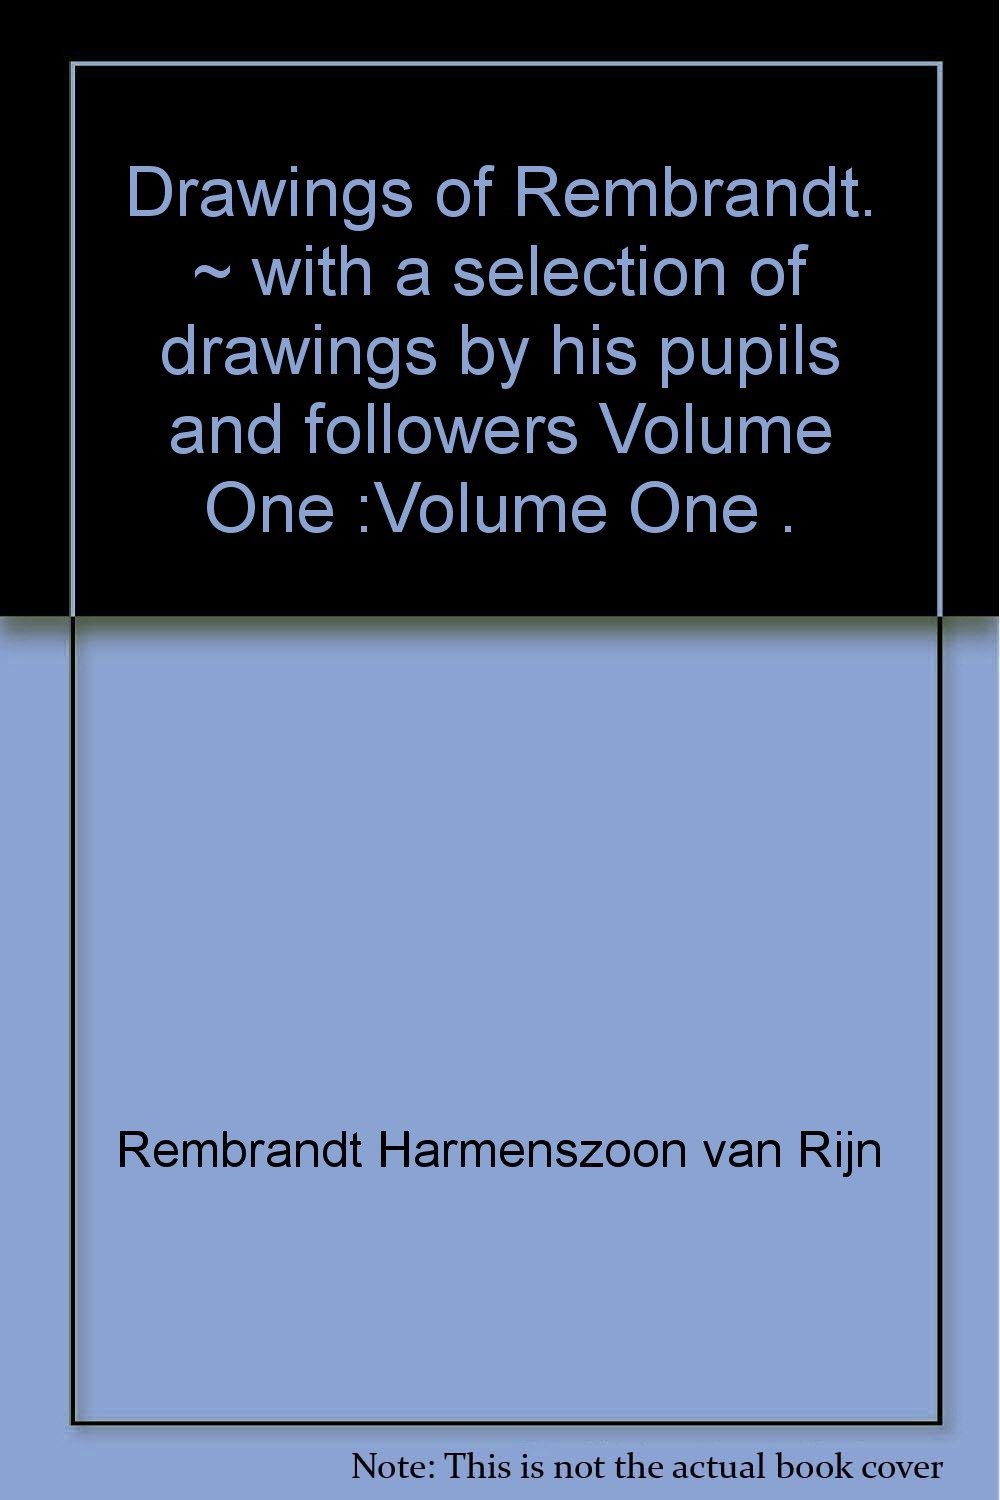 drawings of rembrandt with a selection of drawings by his pupils and followers two volumes